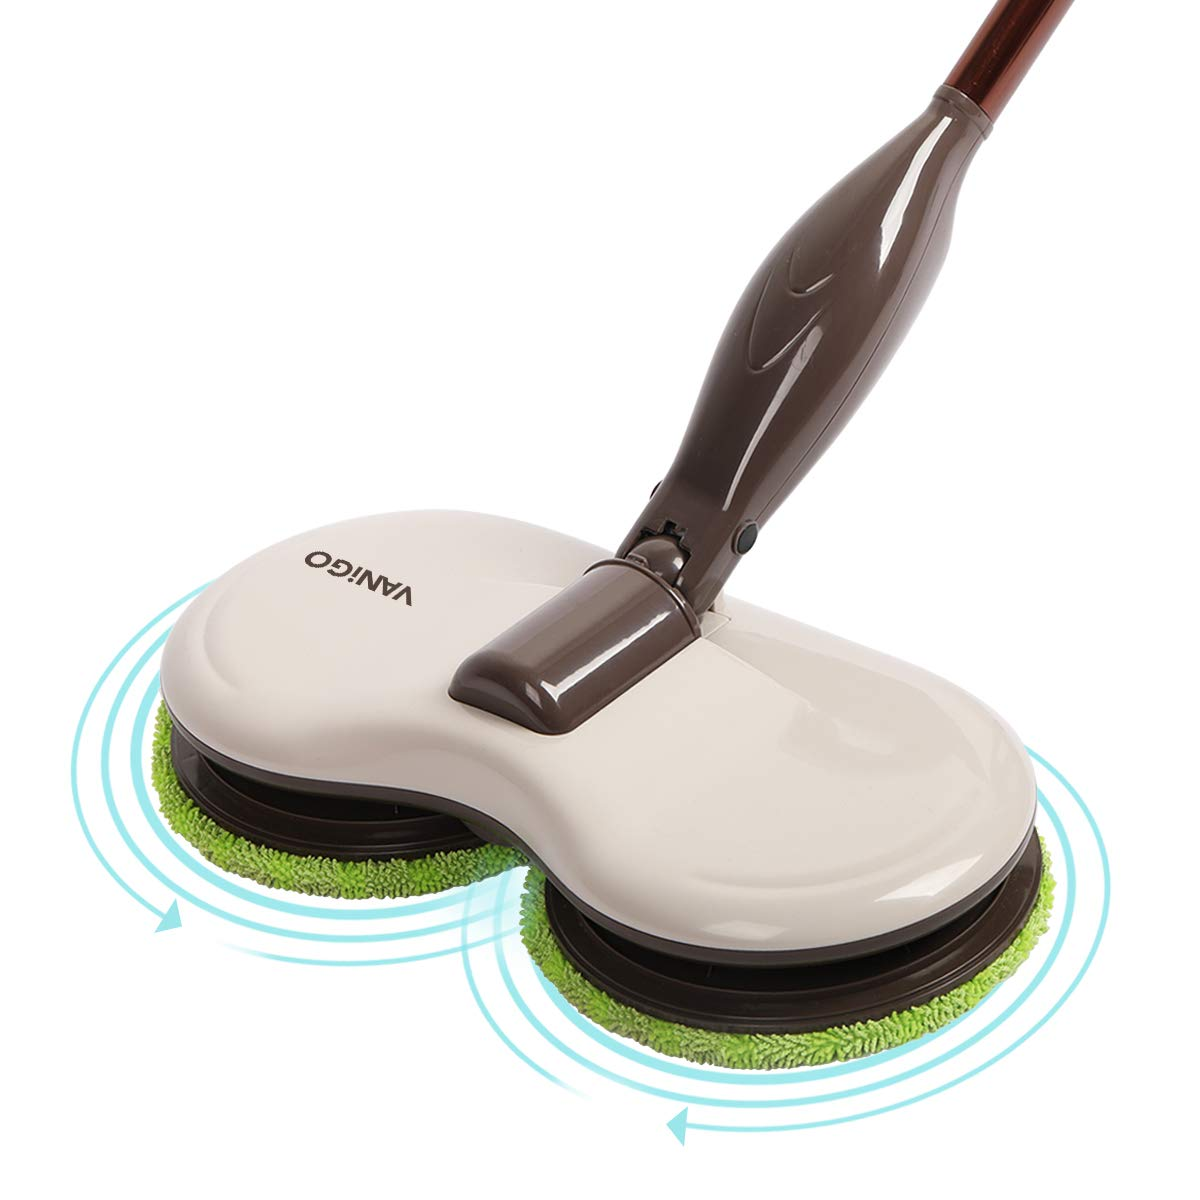 VANiGO Electric Spin Mop for Tile Hard Wood Floor Window and Ceiling, with 120rpm Dual Rotary Cleaning Heads, Replaceable Pads and Extendable Handle, 90 min Working Time